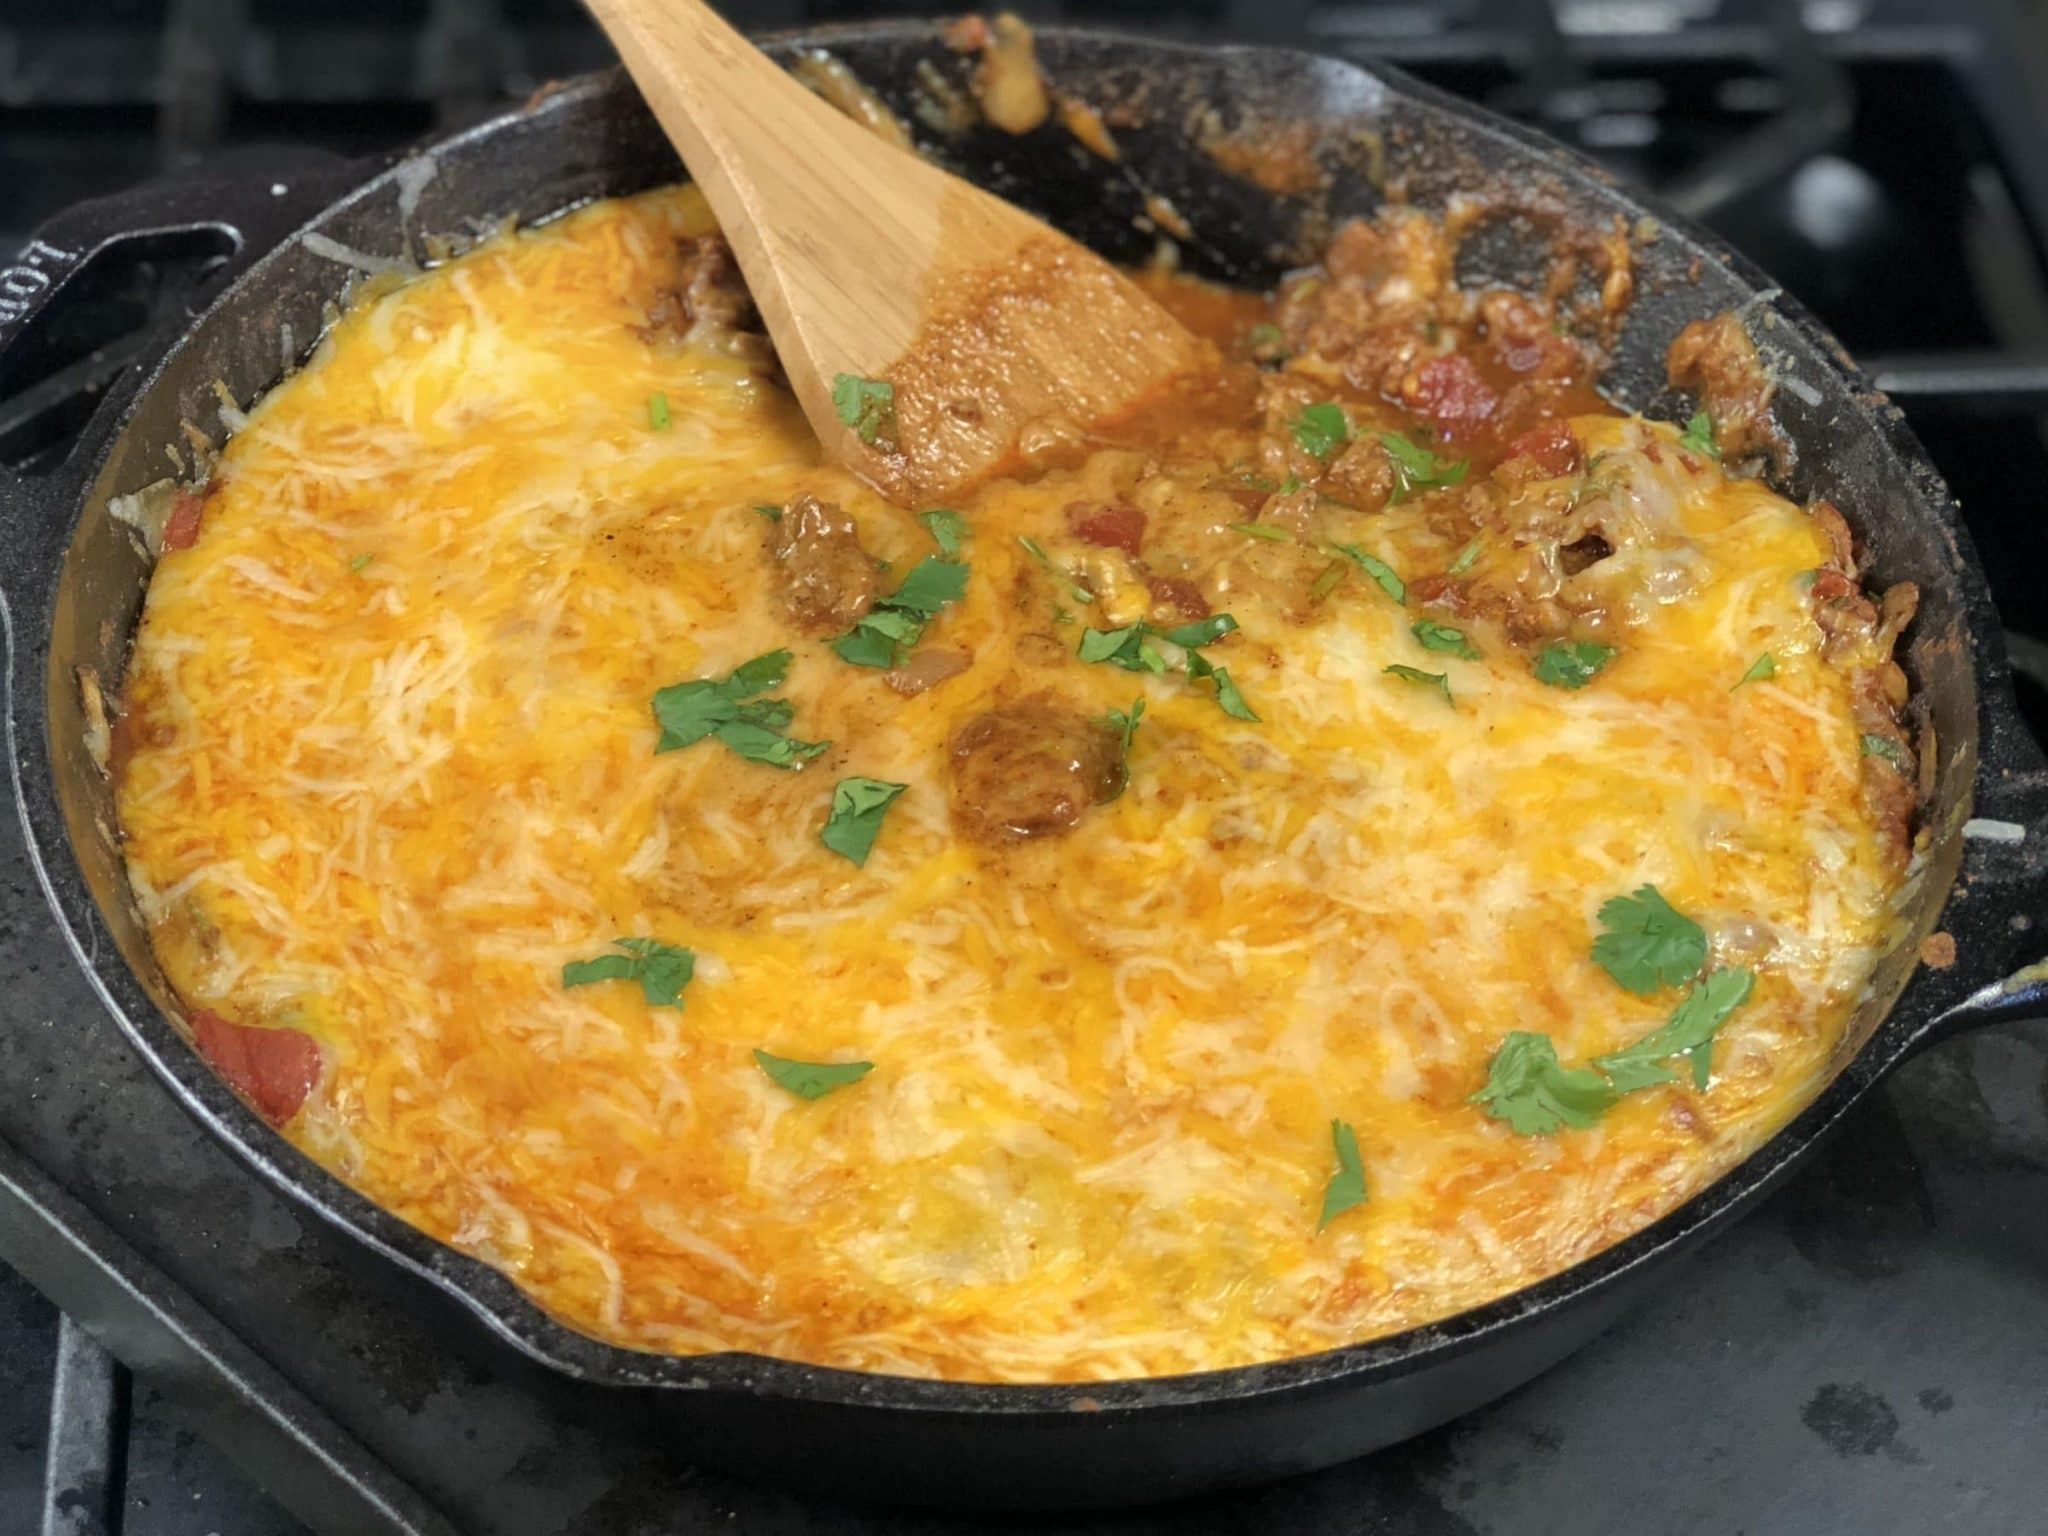 This cheesy ground beef keto taco skillet is just what you need to stay within your macros and have an amazing taco Tuesday! #keto #ketorecipes #ketodiet #ketogenic #tacos #tacotuesday